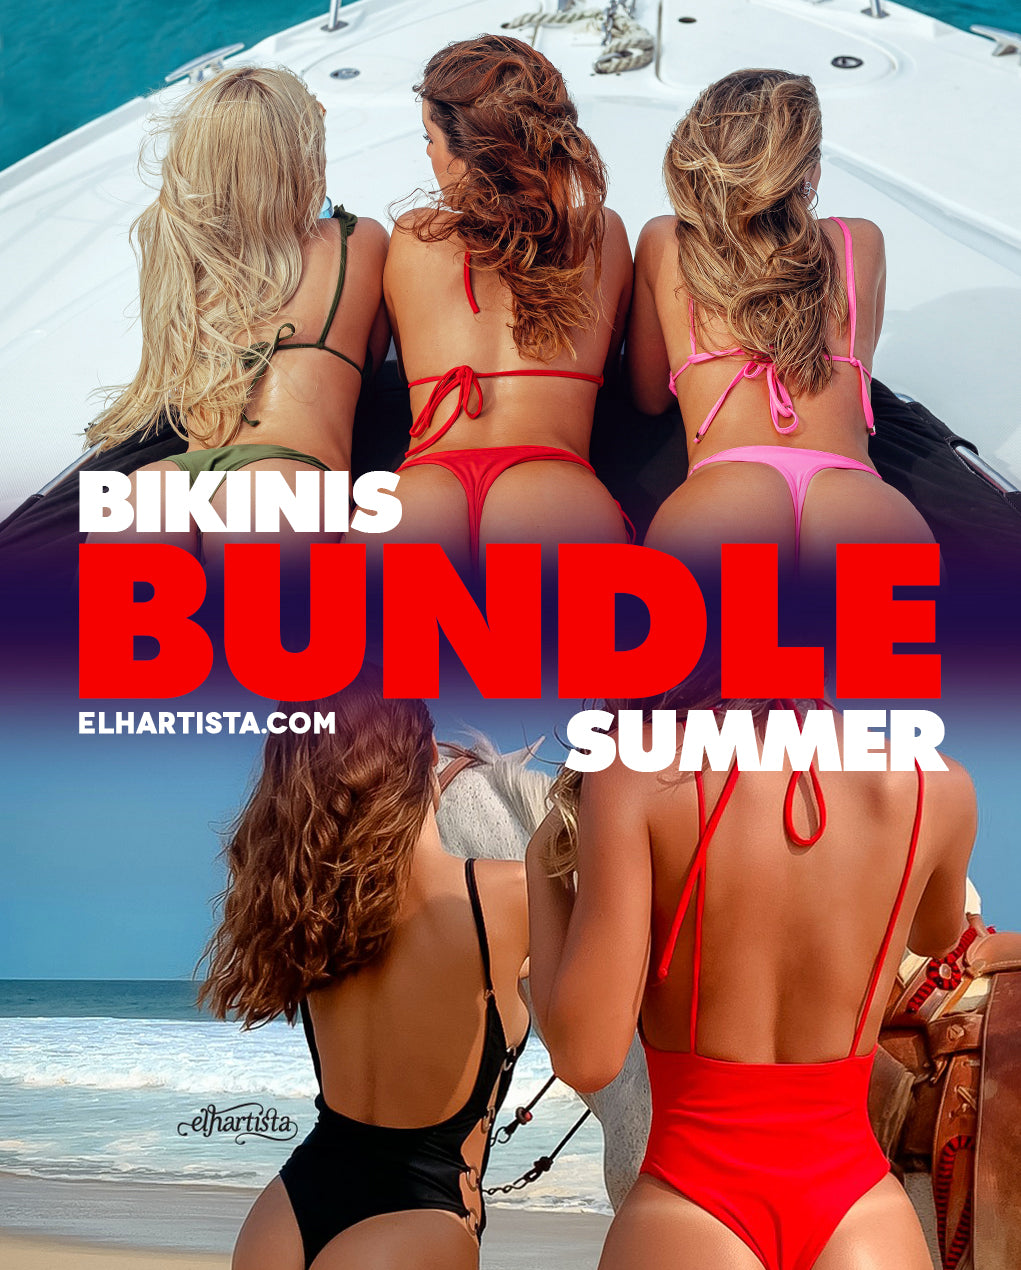 SUMMER/BIKINIS BUNDLE